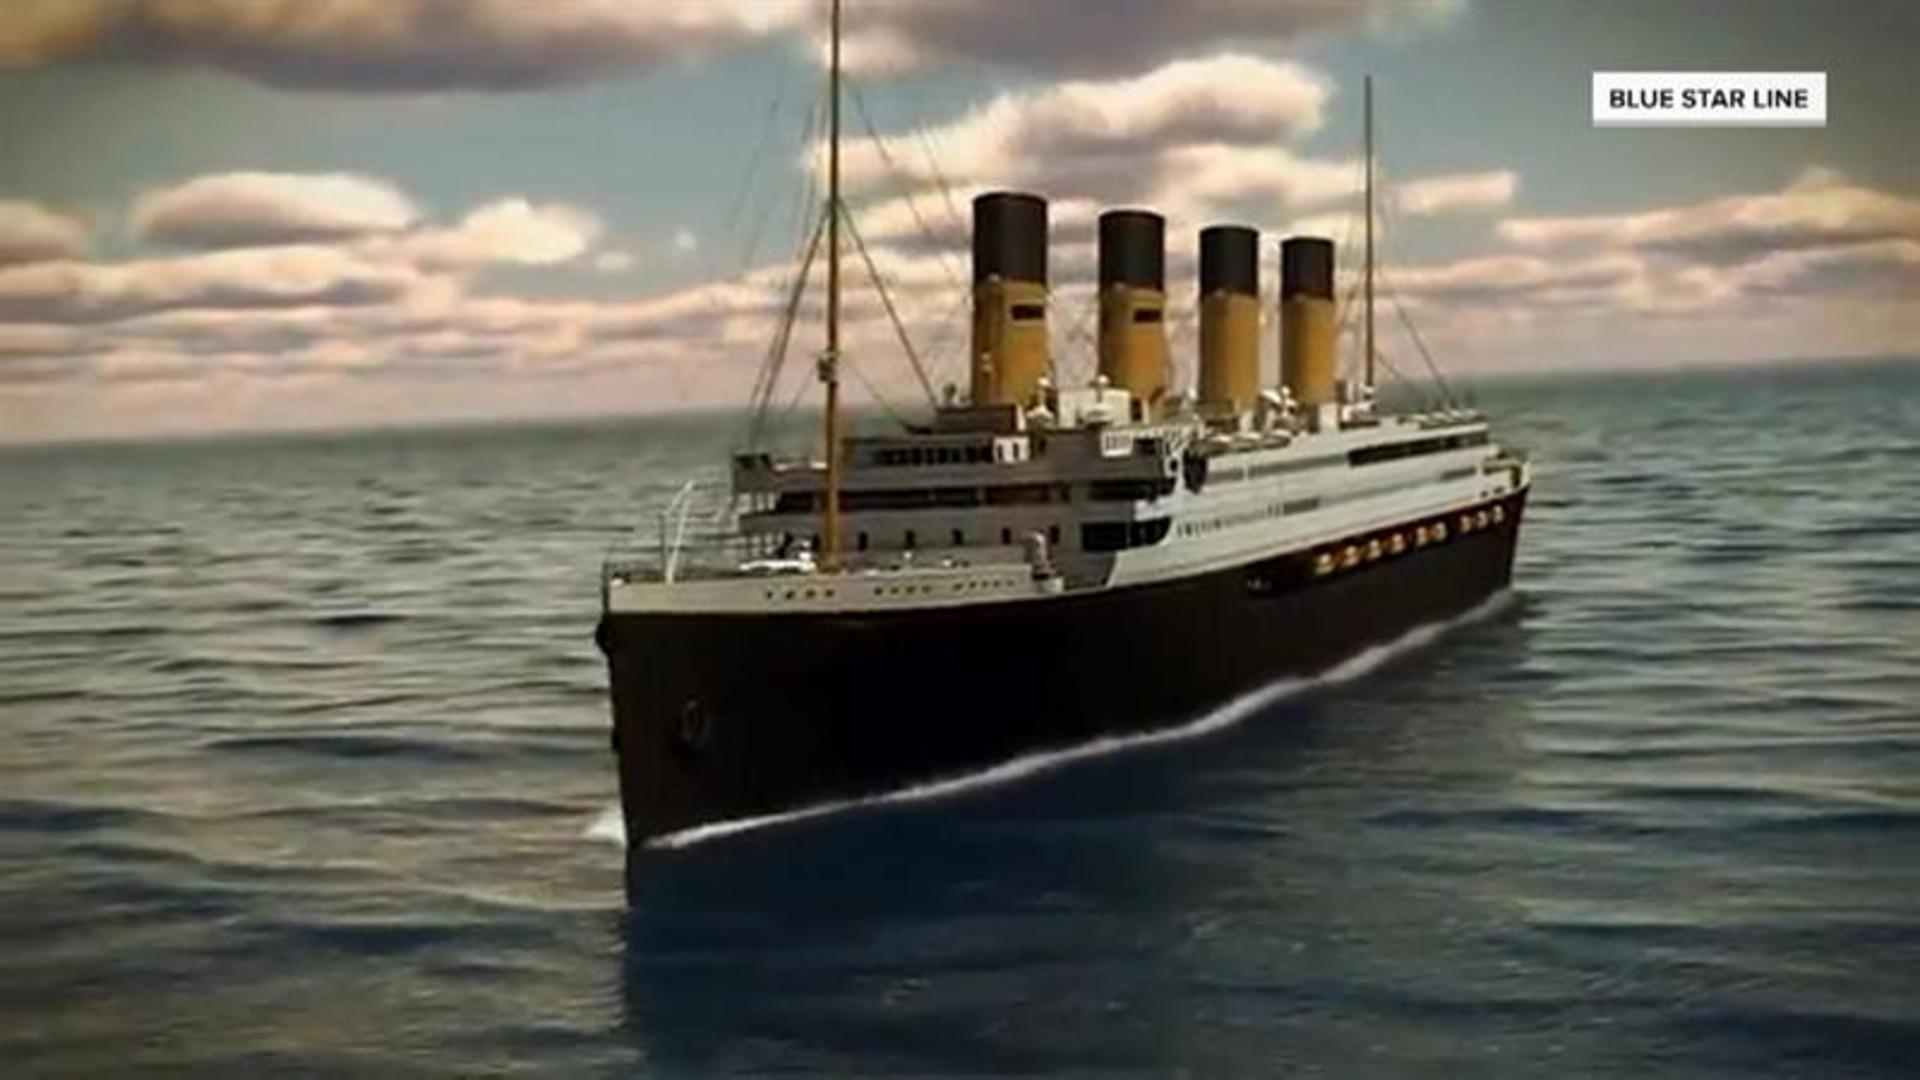 Weird News - Titanic II To Set Sail, Retrace Infamous Route of Original Ship